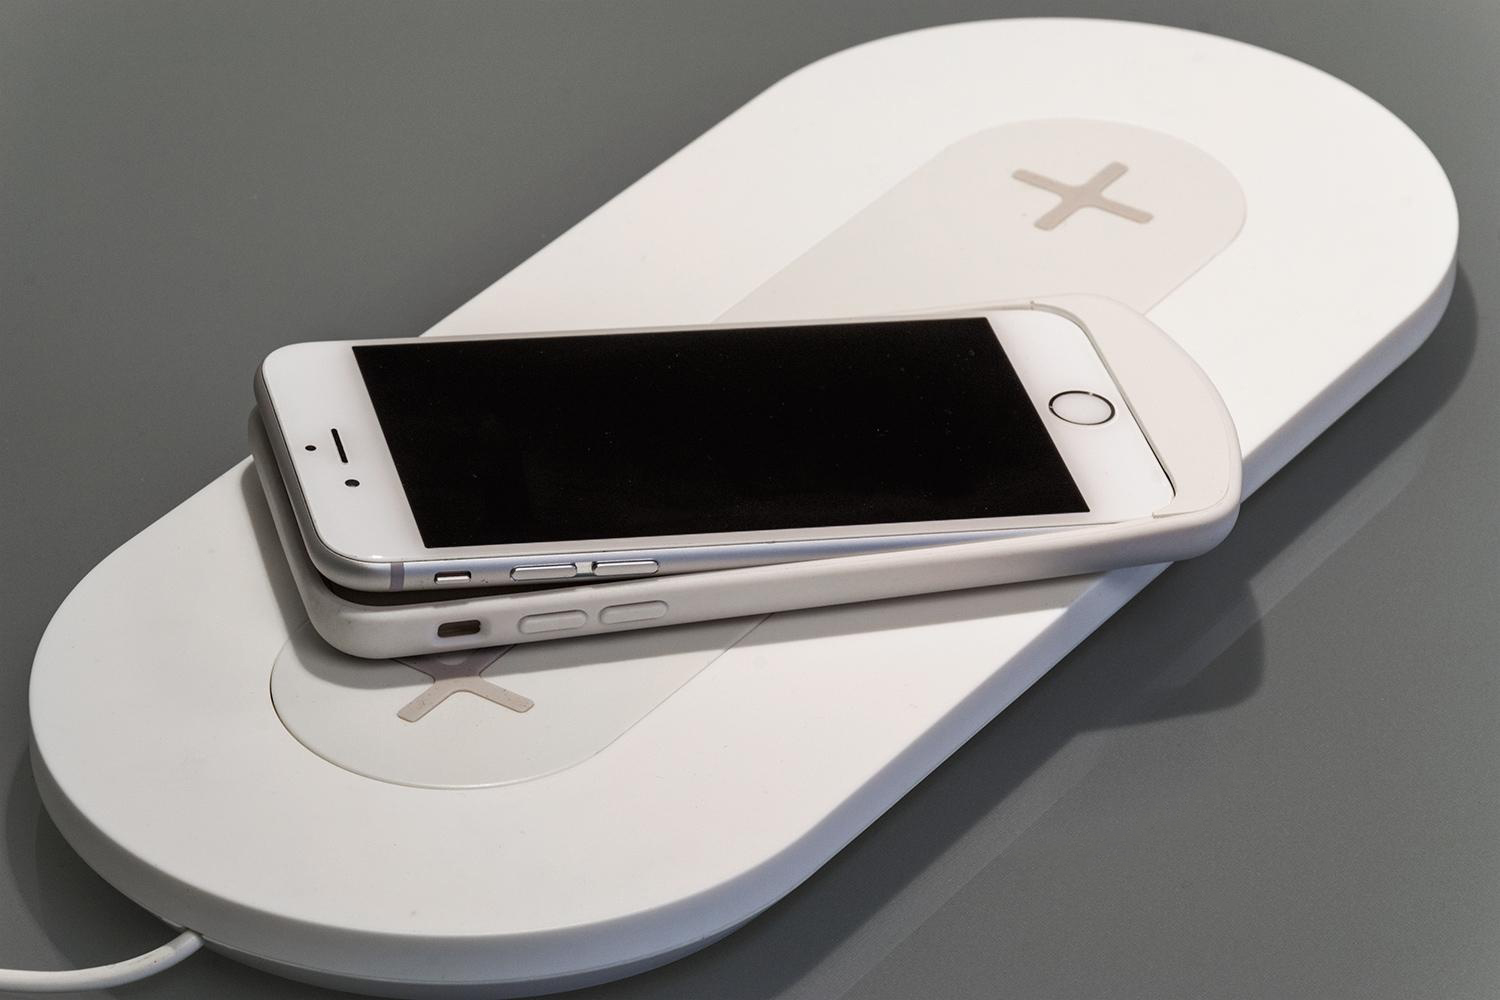 Wireless Phone Charger: Has Wireless Charging Finally Gone Mainstream?